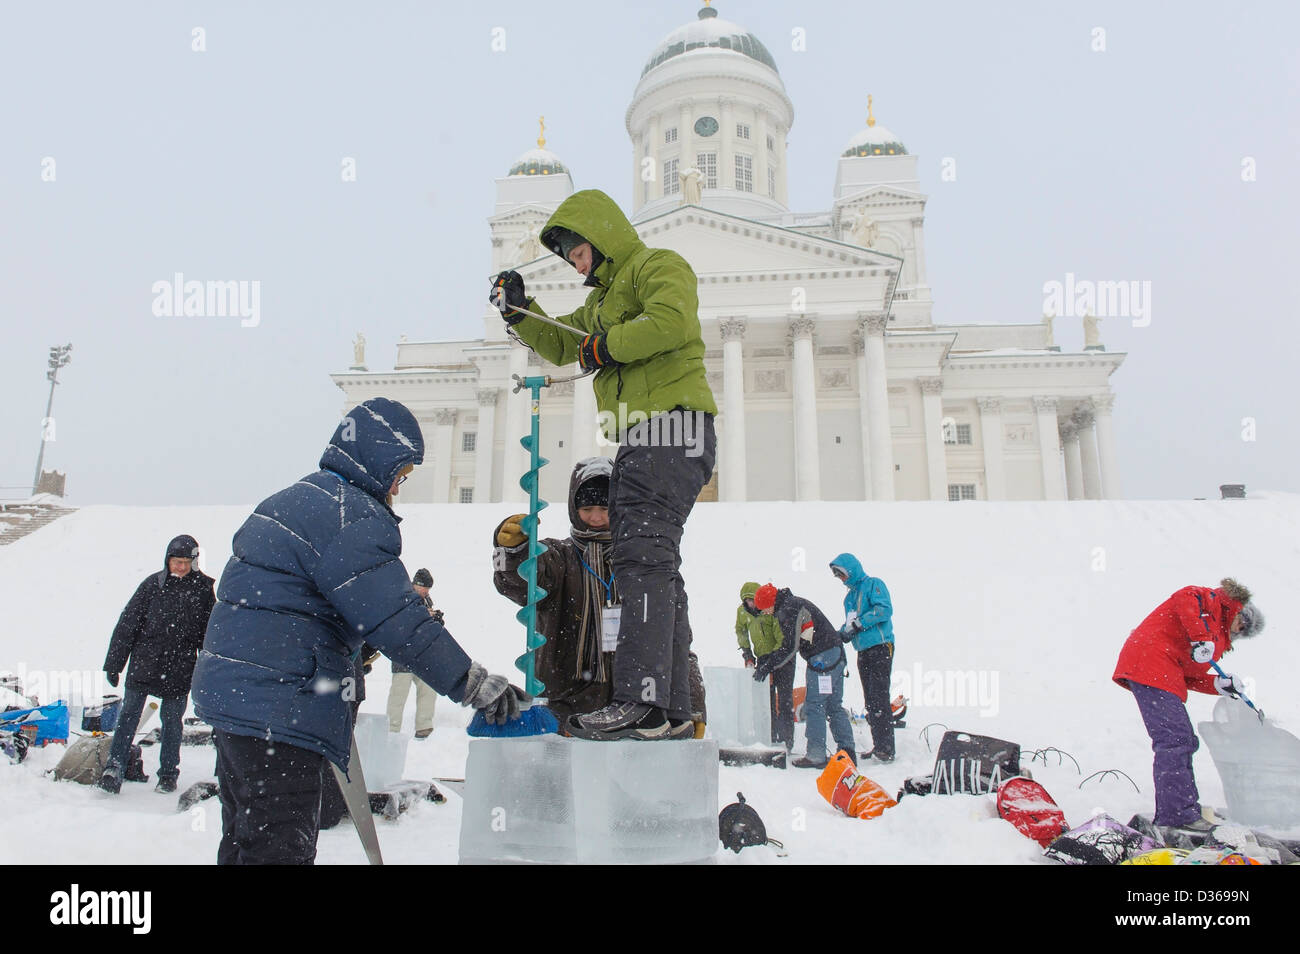 Ice carving competition in front of the cathedral in Helsinki, Finland. - Stock Image